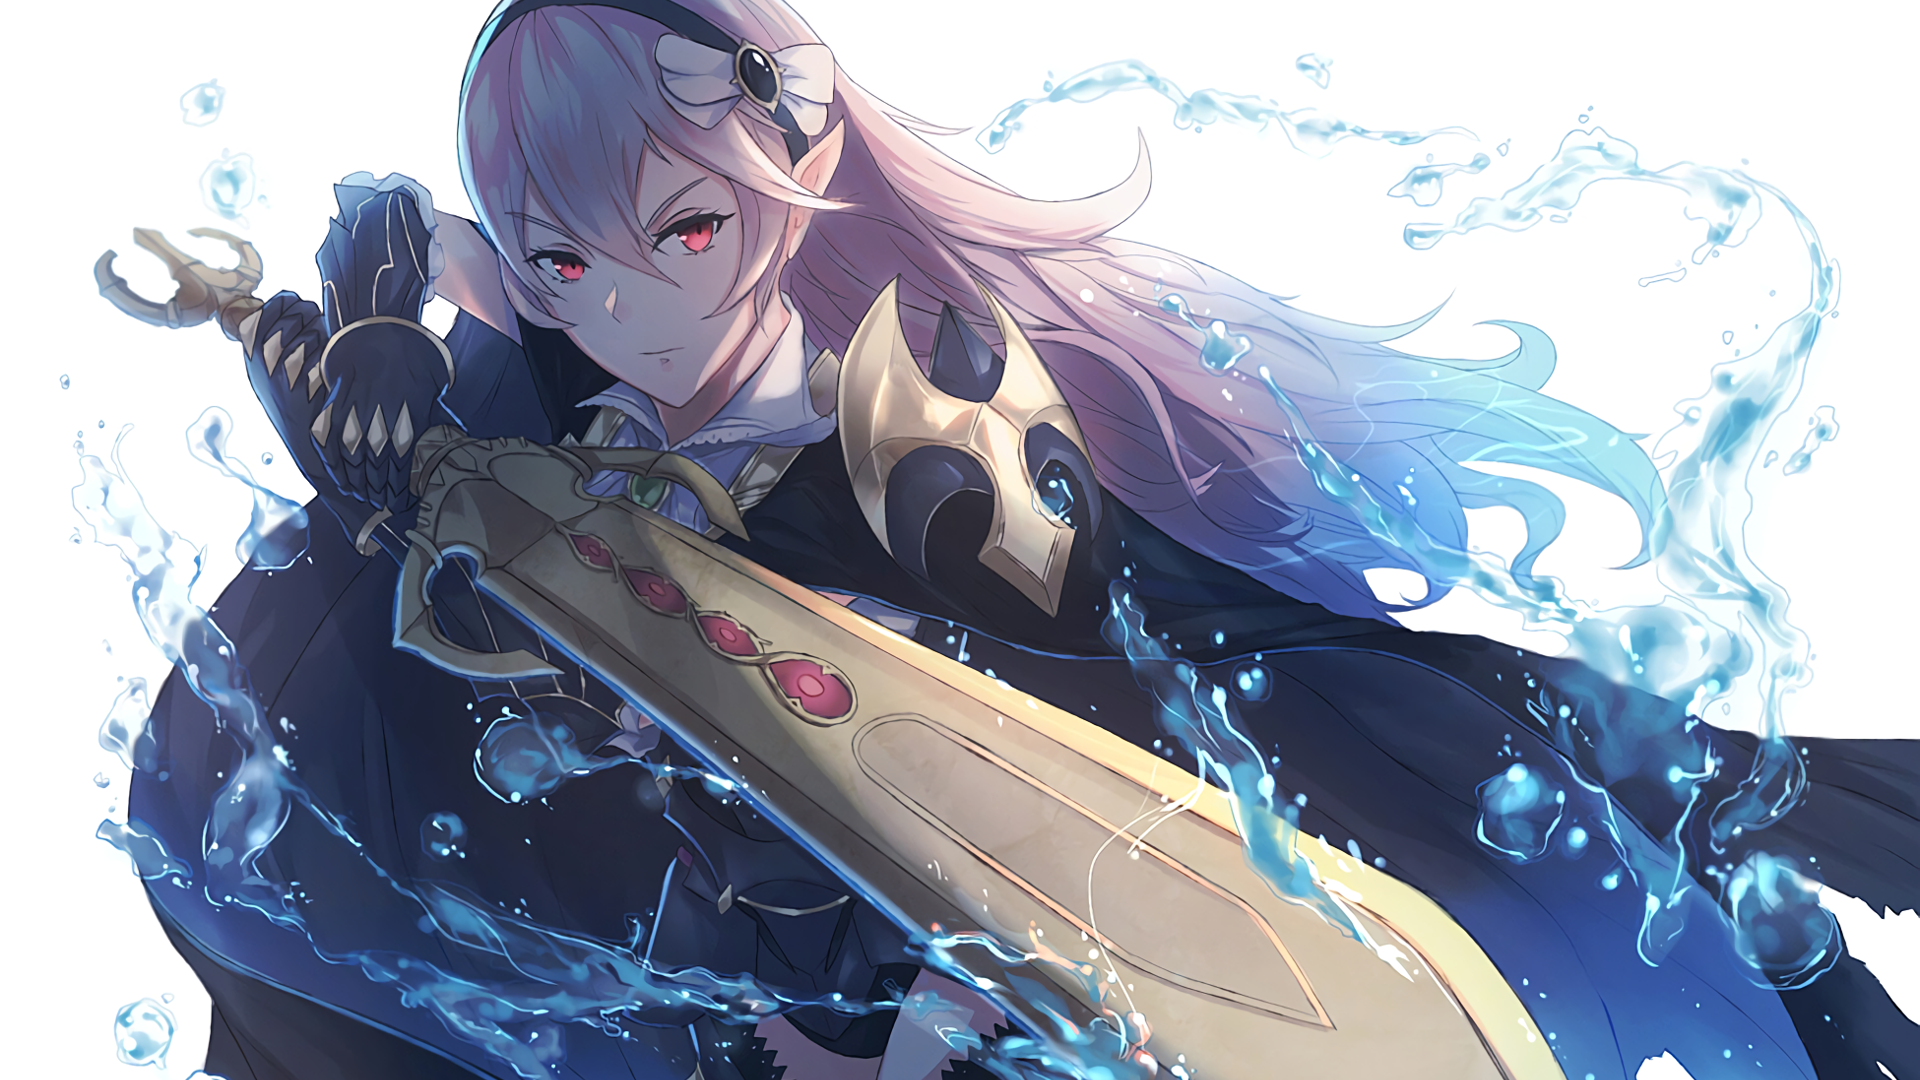 Fire Emblem Fates Wallpapers Fire Emblem Wallpaper Fire Emblem